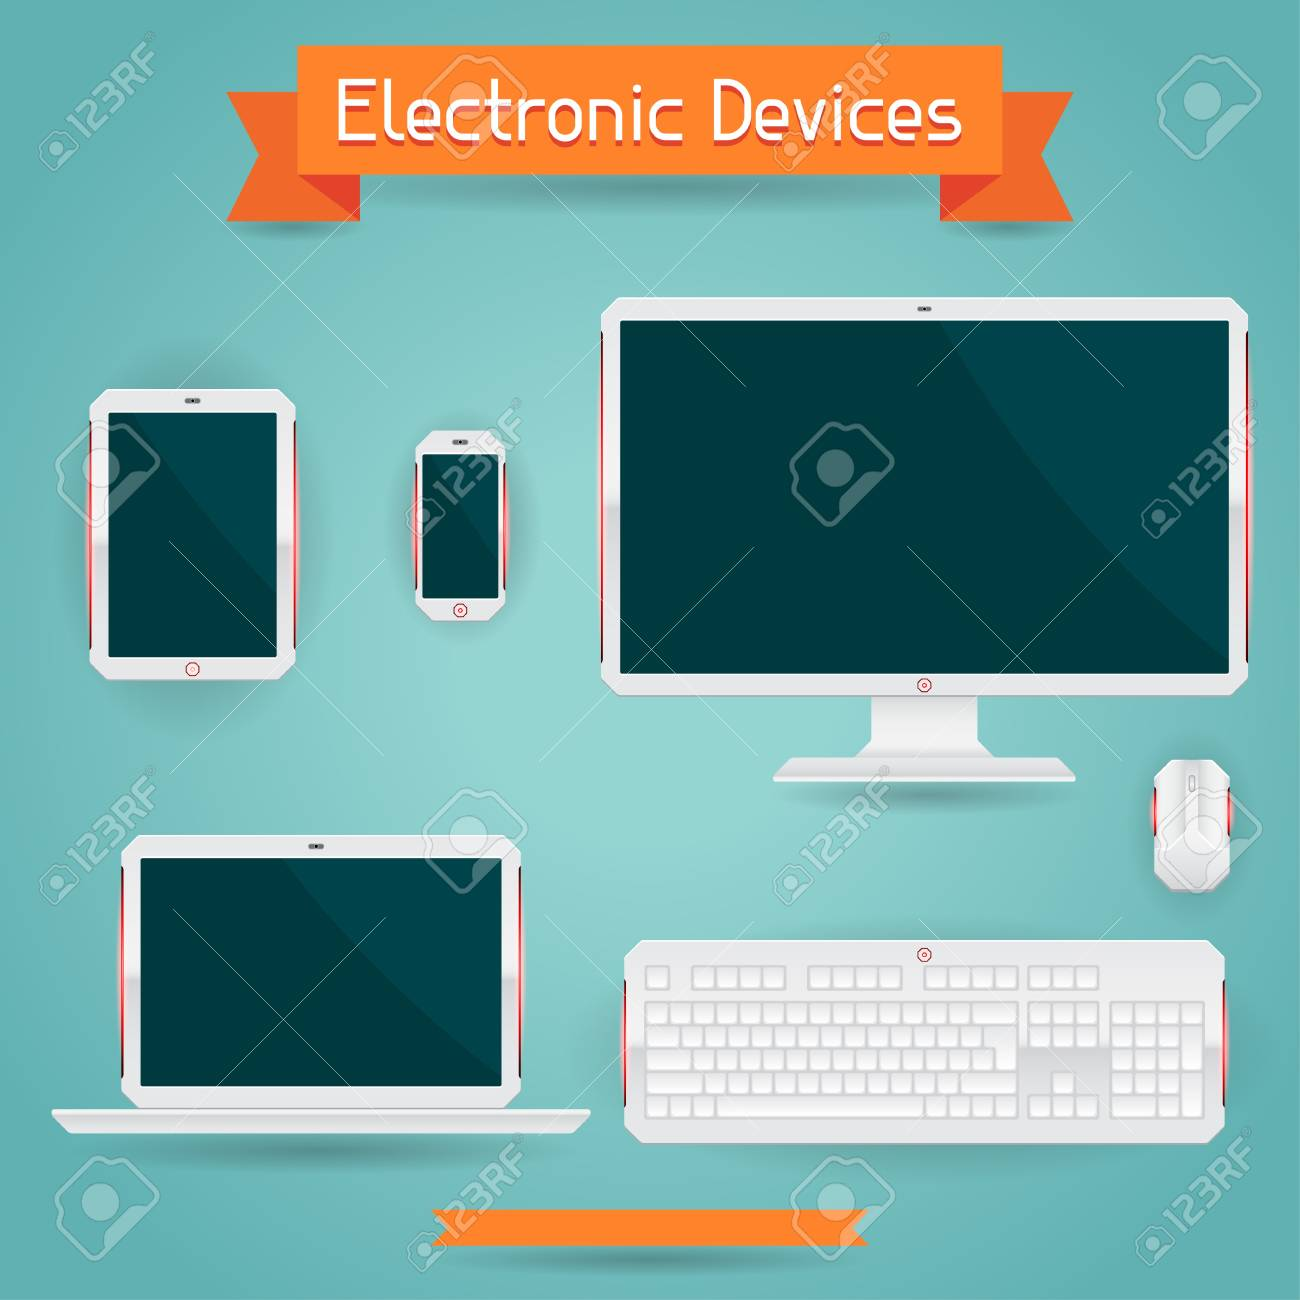 Electronic devices - computer, laptop, tablet and phone. Stock Vector - 20481924